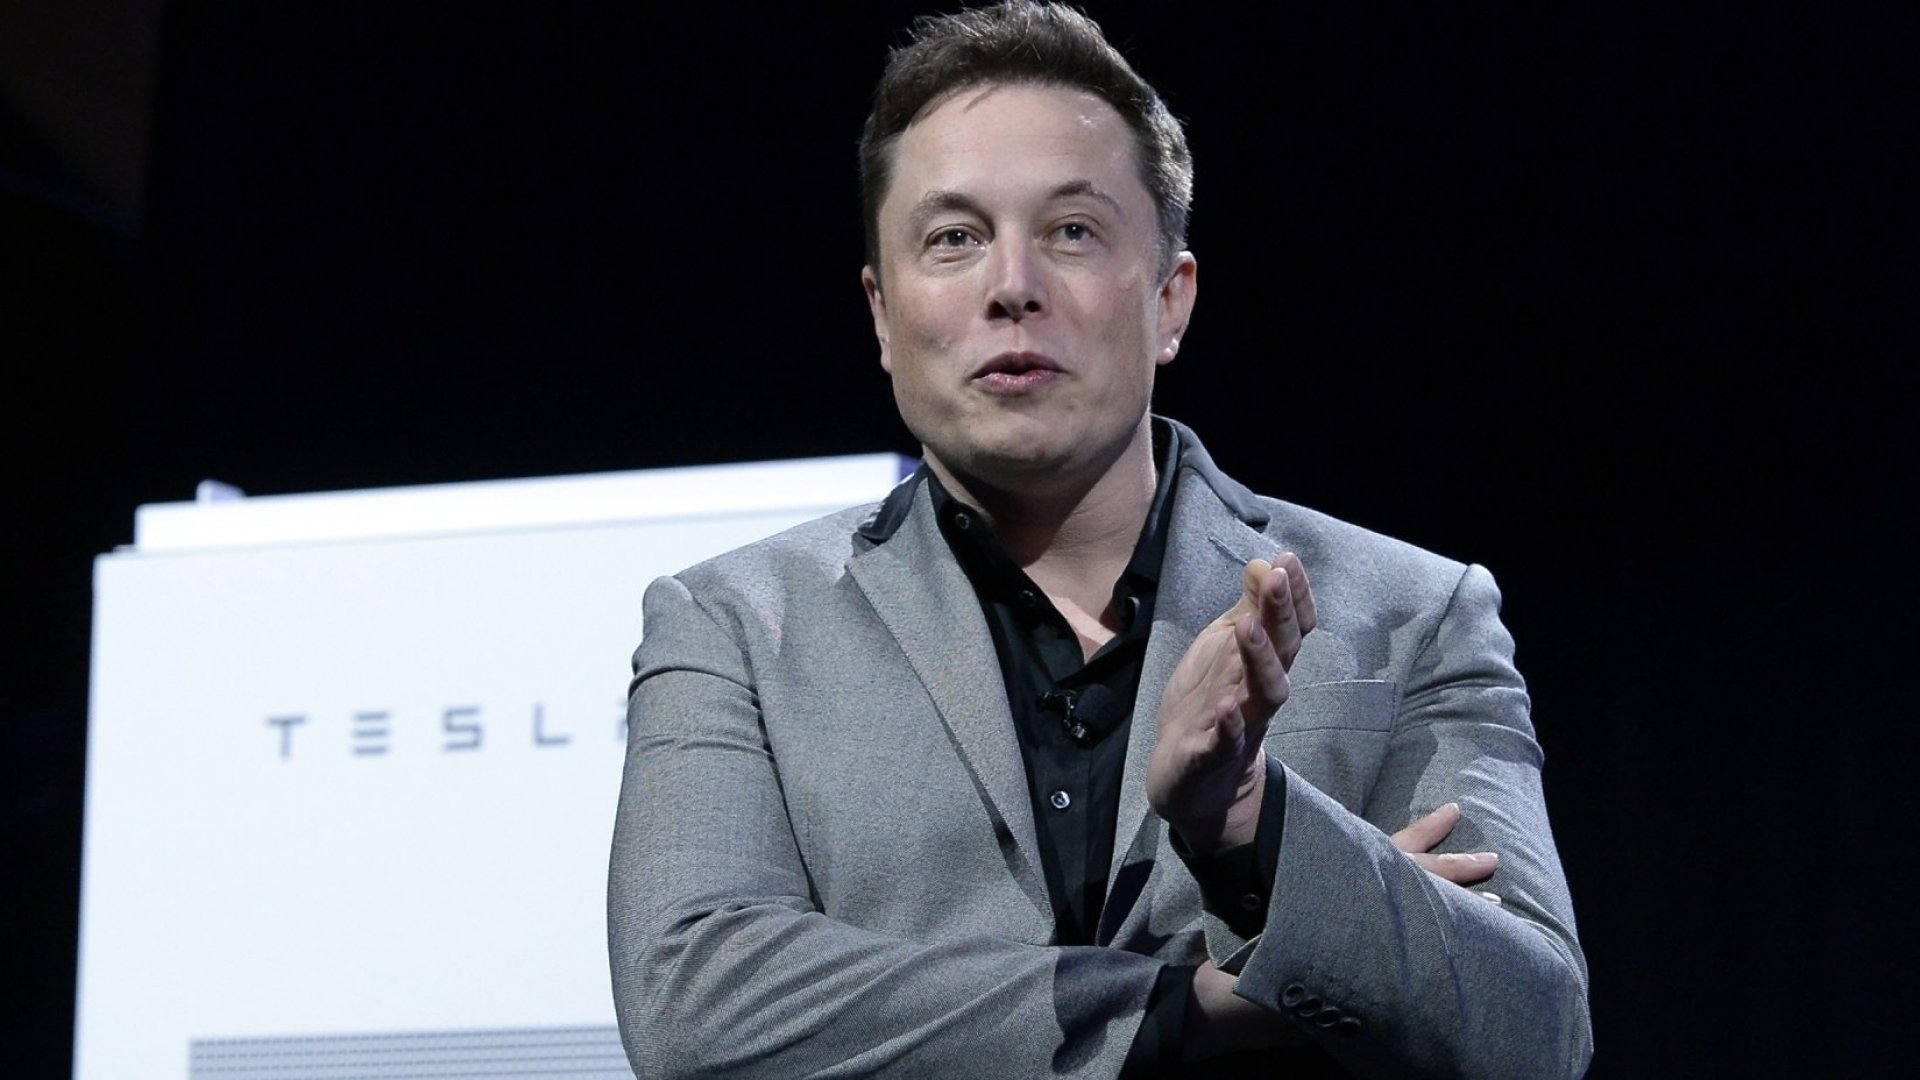 Elon Musk Will Ask Shareholders to Take Tesla Private. Good for Him